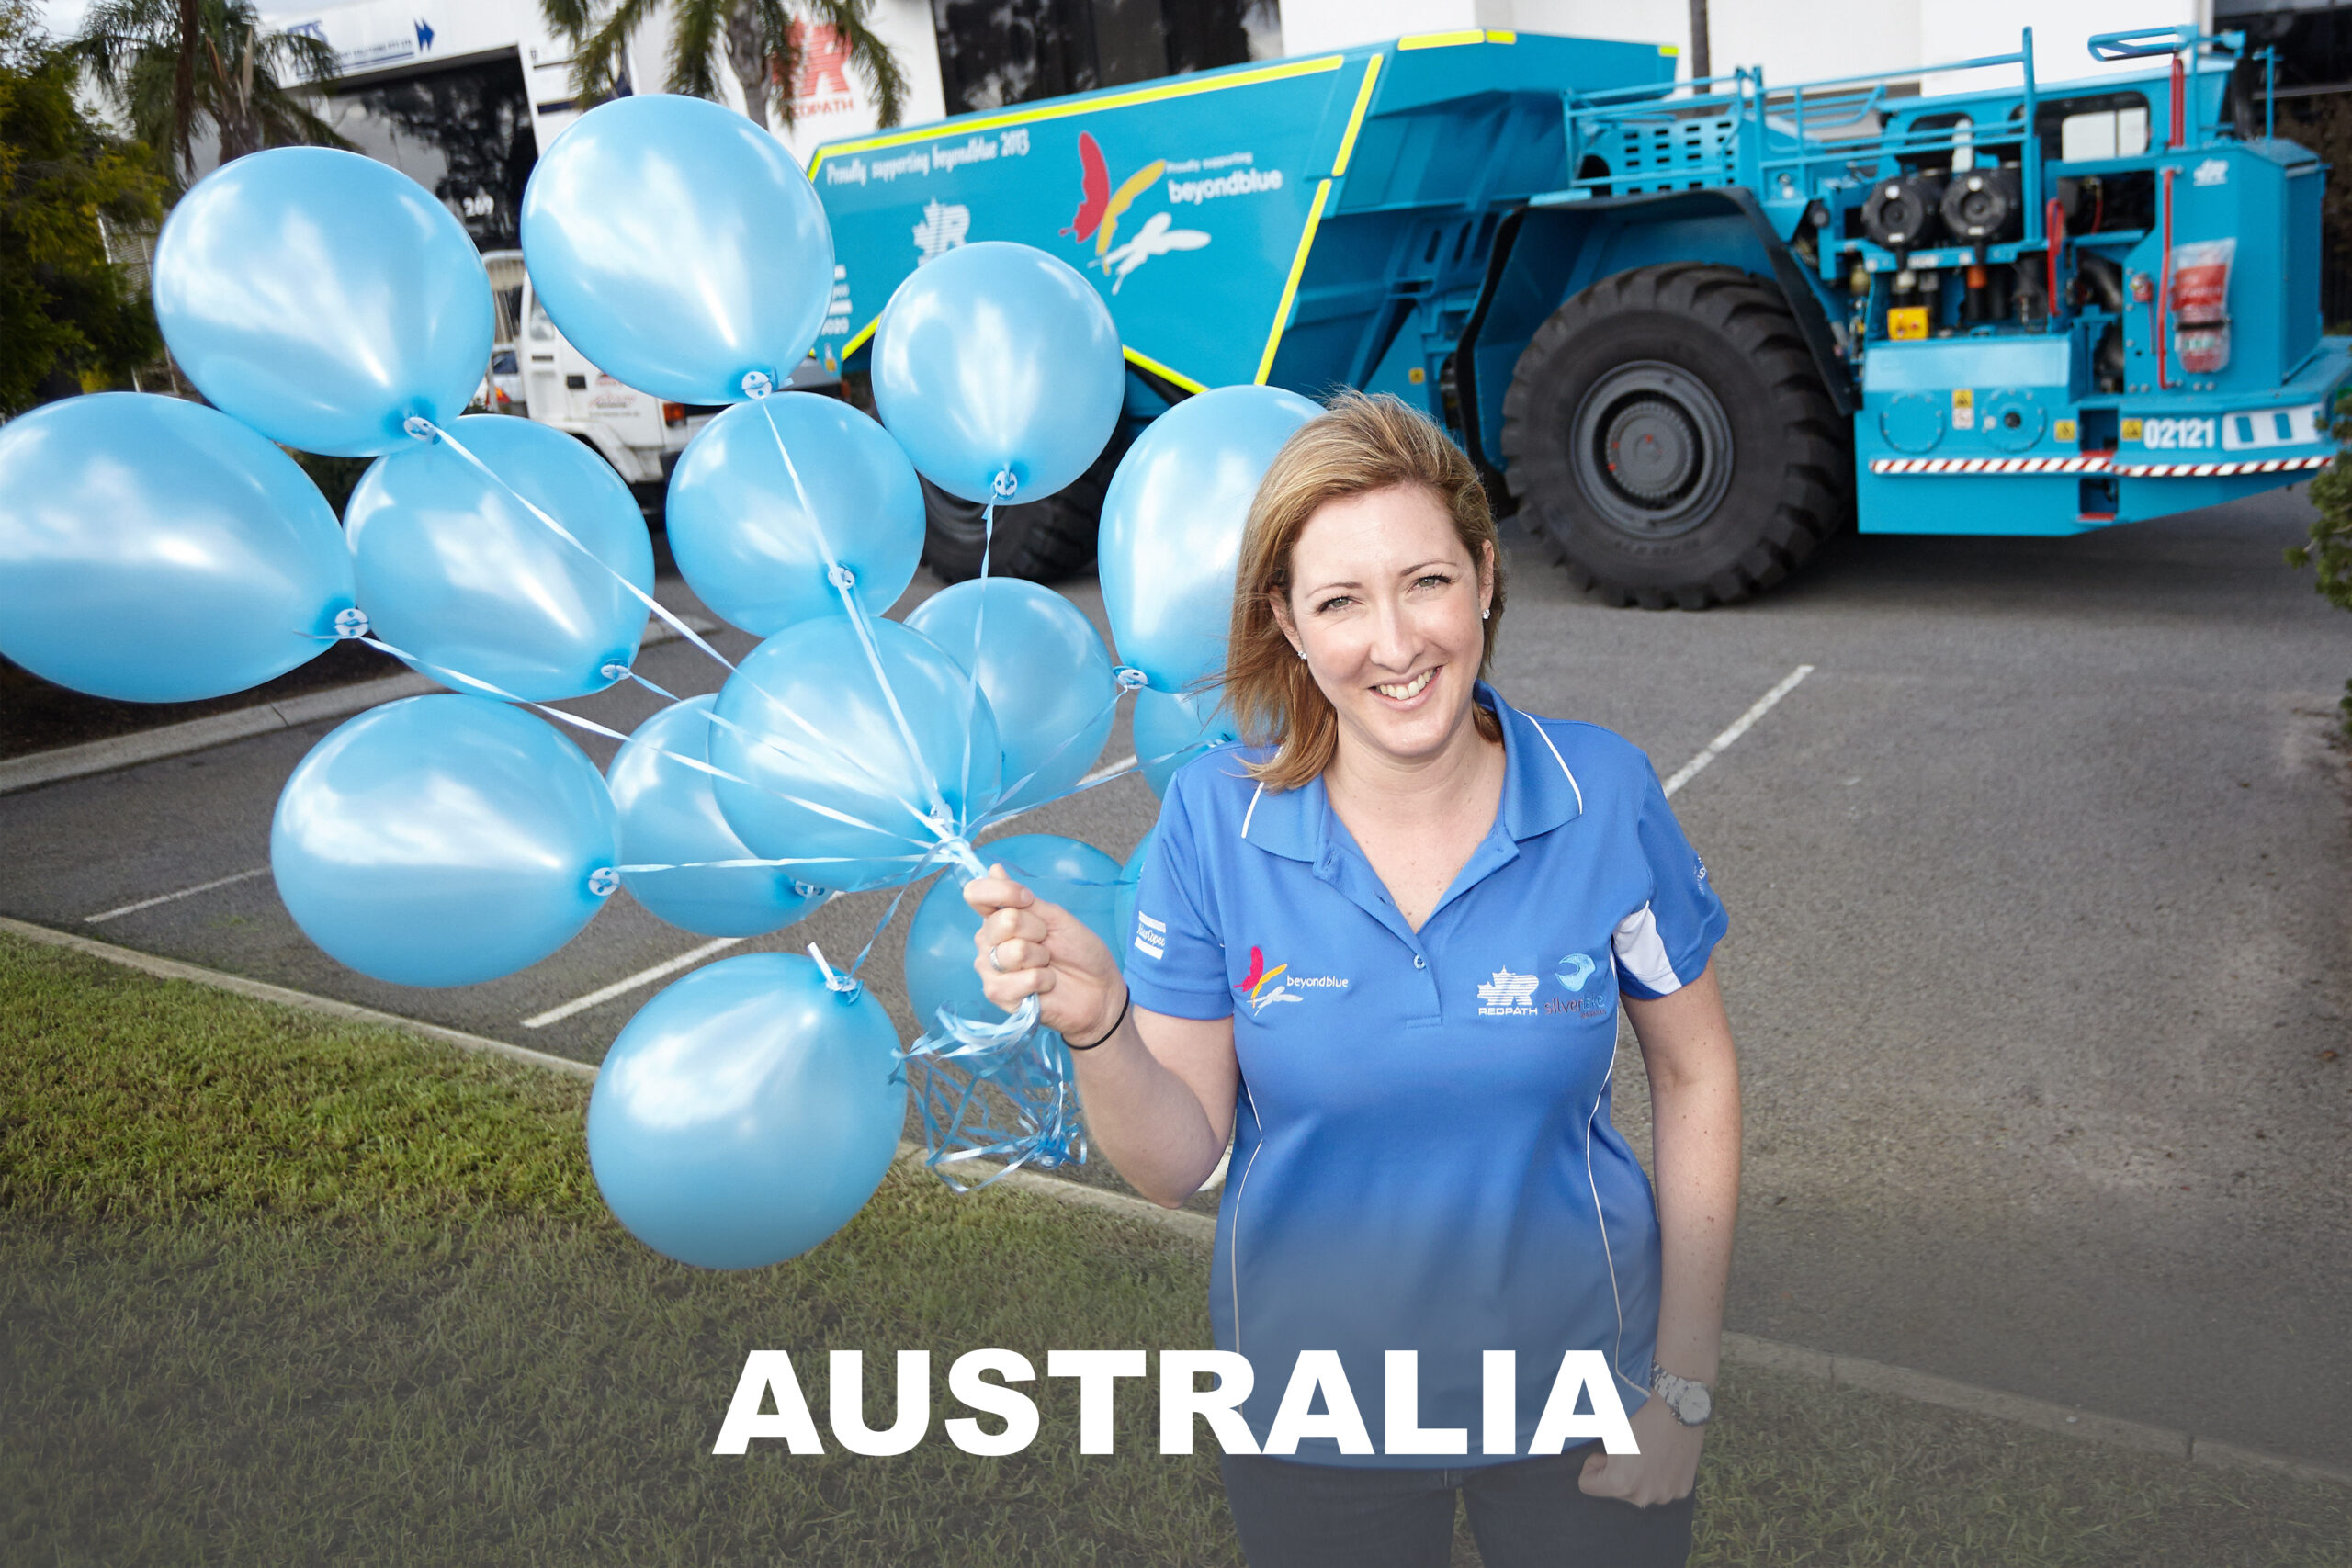 A Redpath Australia employee poses in front of the office with